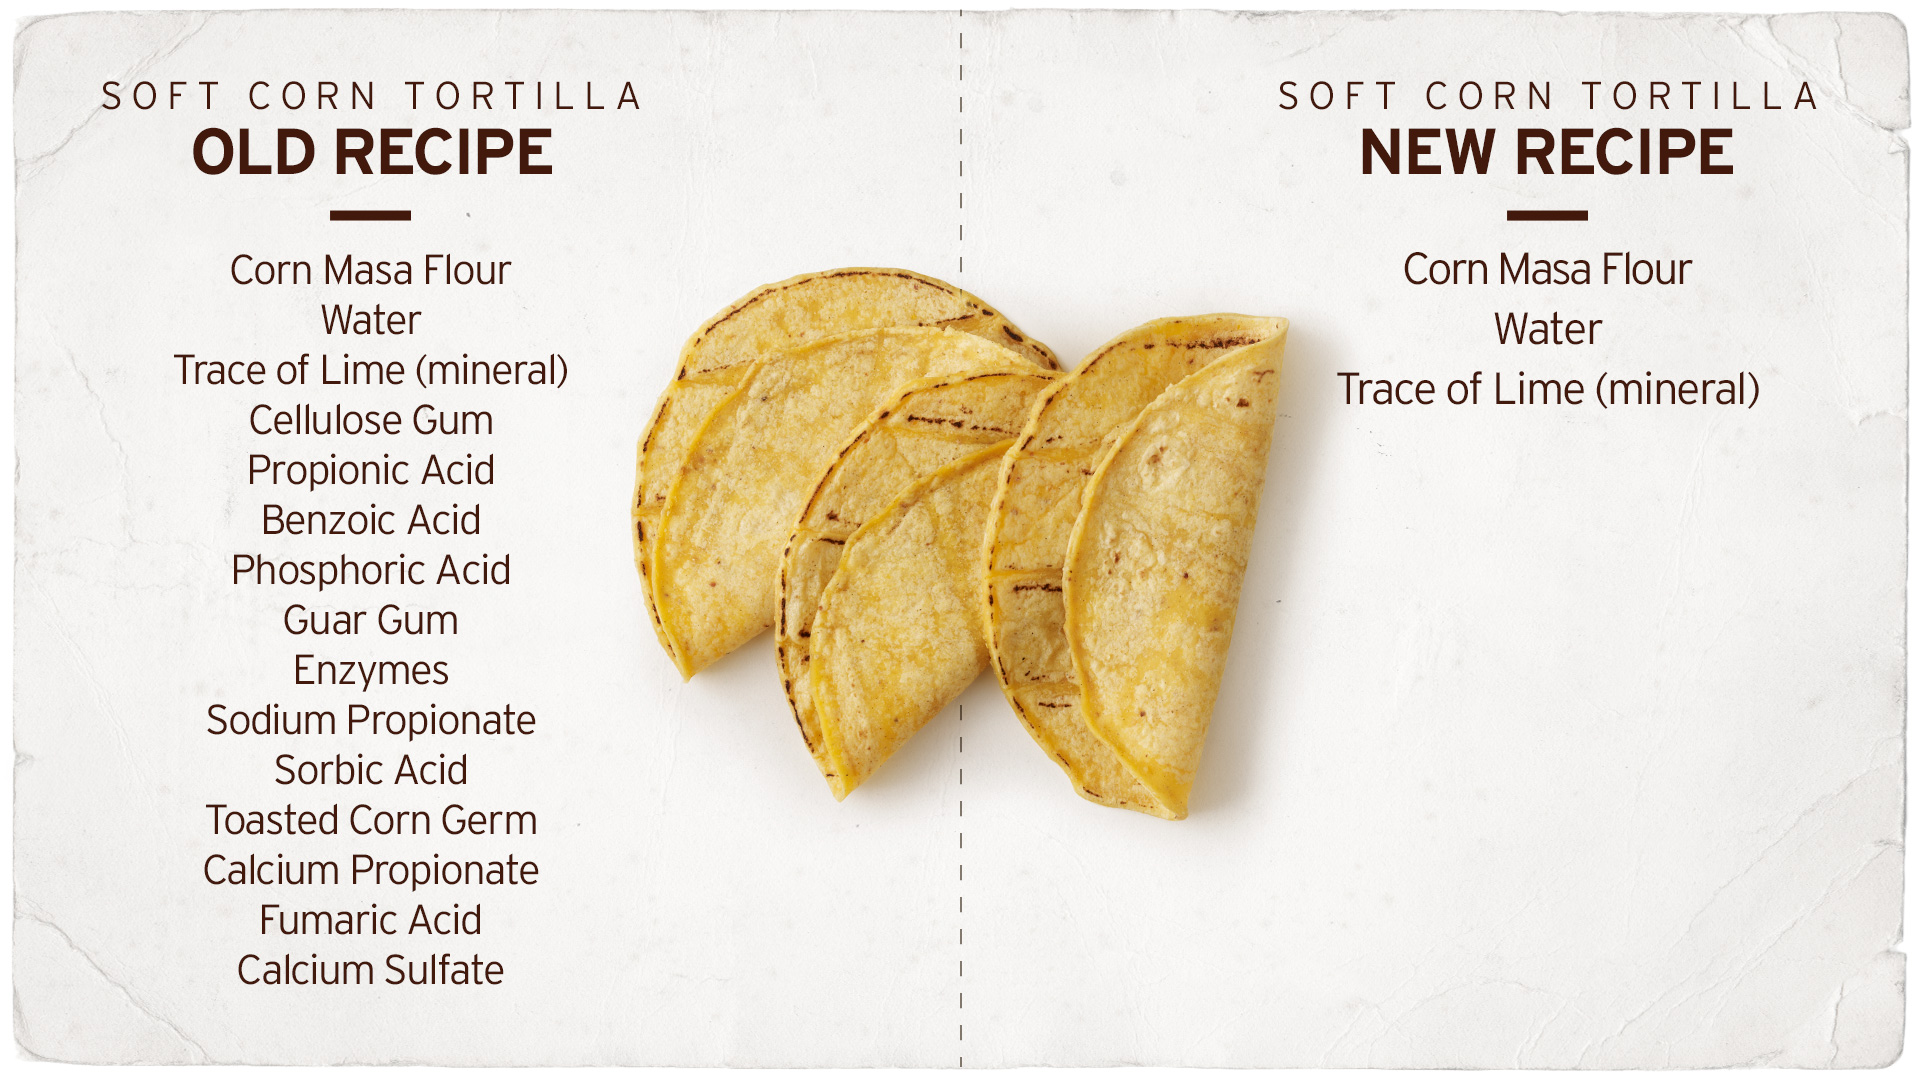 A list of the old soft corn tortilla recipe and a list of the new soft corn tortilla recipe, now with just three ingredients: non-gmo corn masa flour, water, the mineral lime.